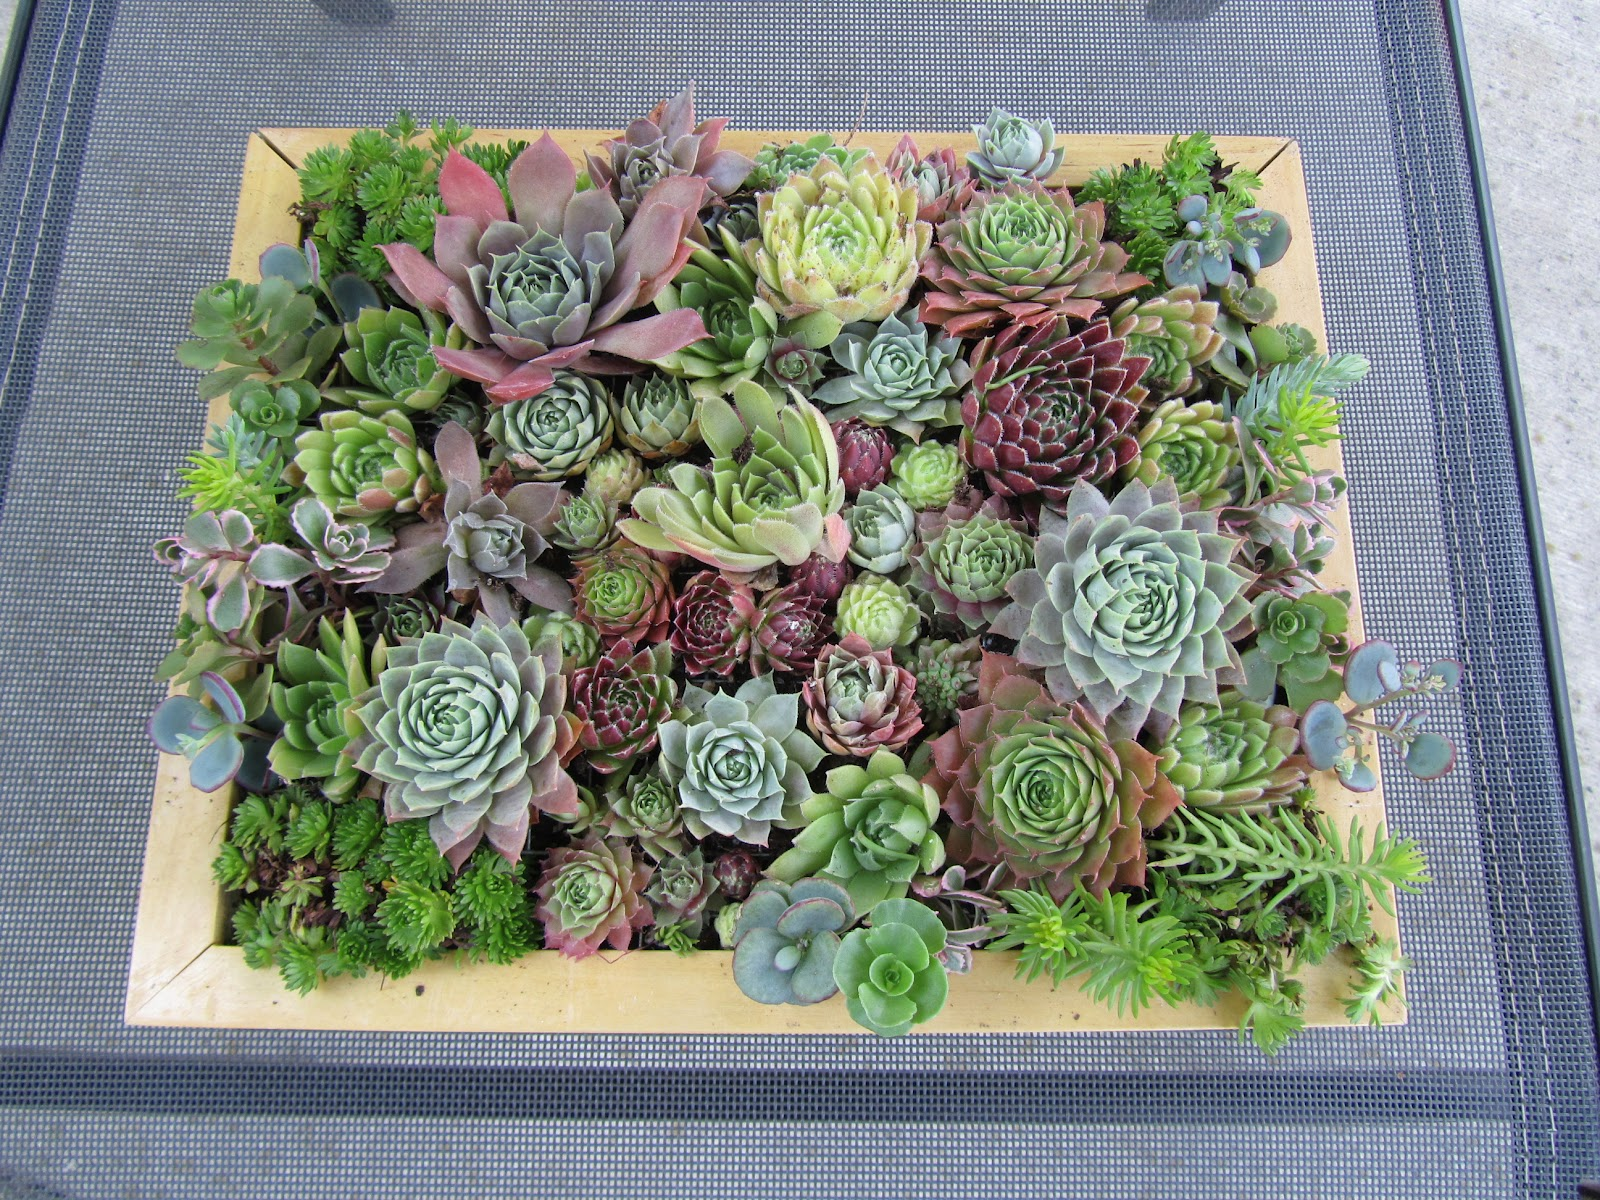 Cheesehead gardening succulent picture frames from goodwill find jeuxipadfo Image collections